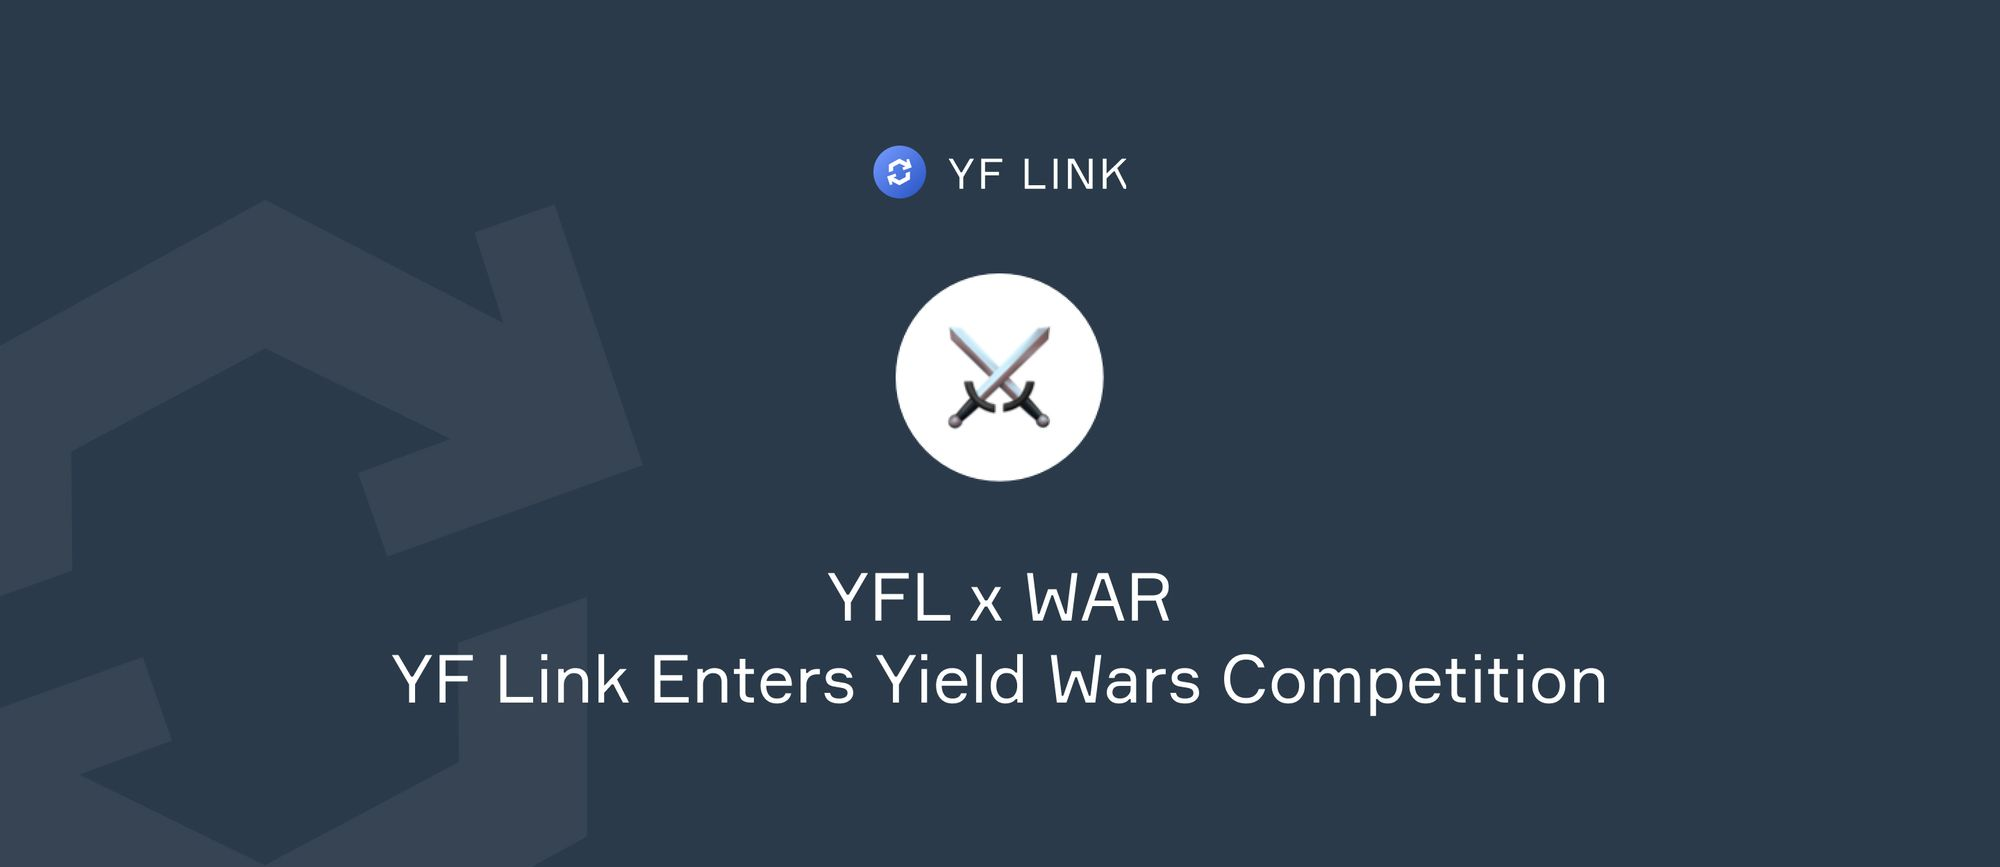 Vote for YF Link in Yield Wars Season 2 and earn WAR!